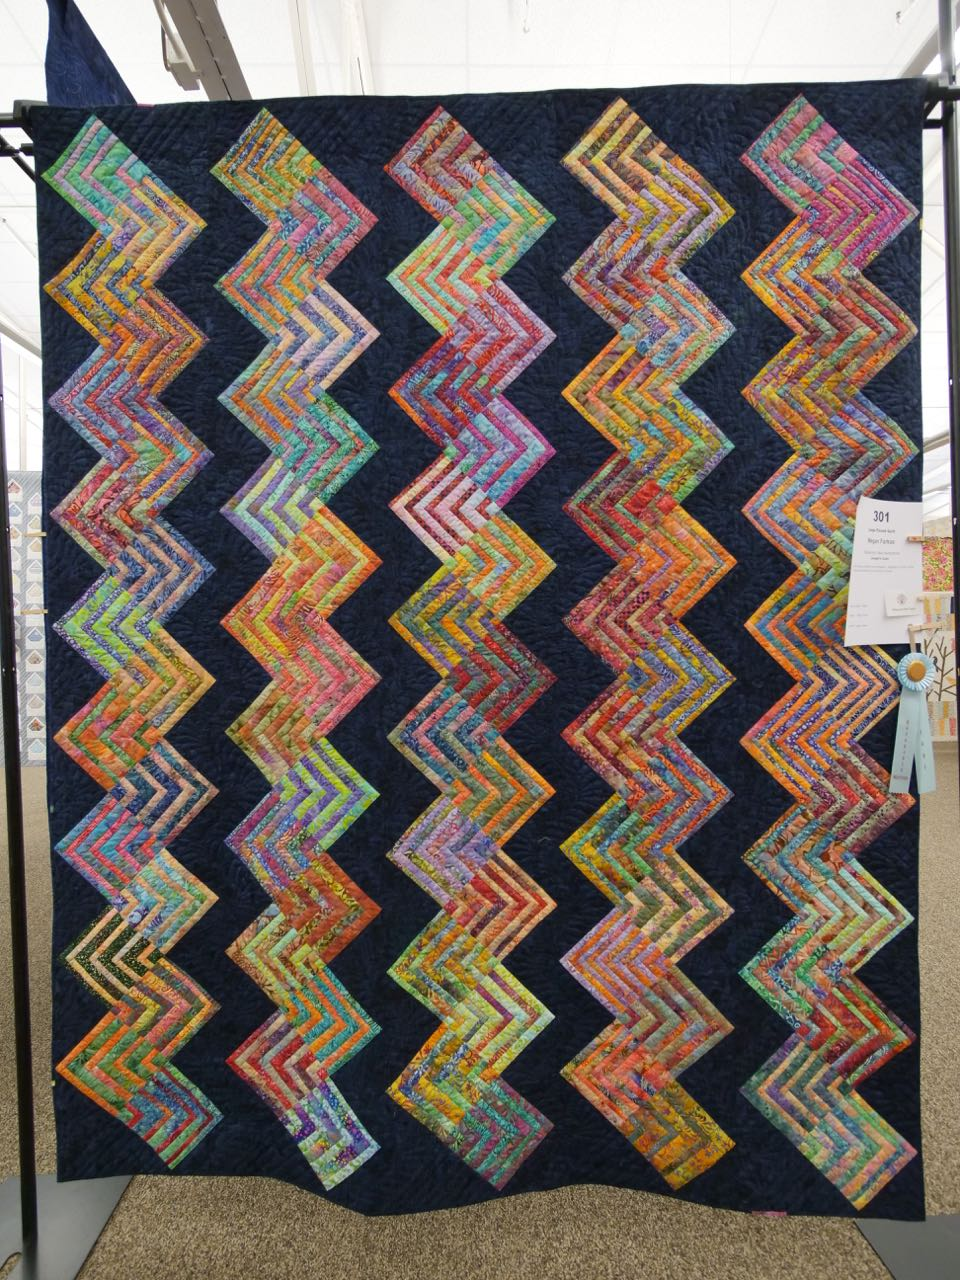 Joseph's Coat - Honorable Mention, Large Pieced Quilts